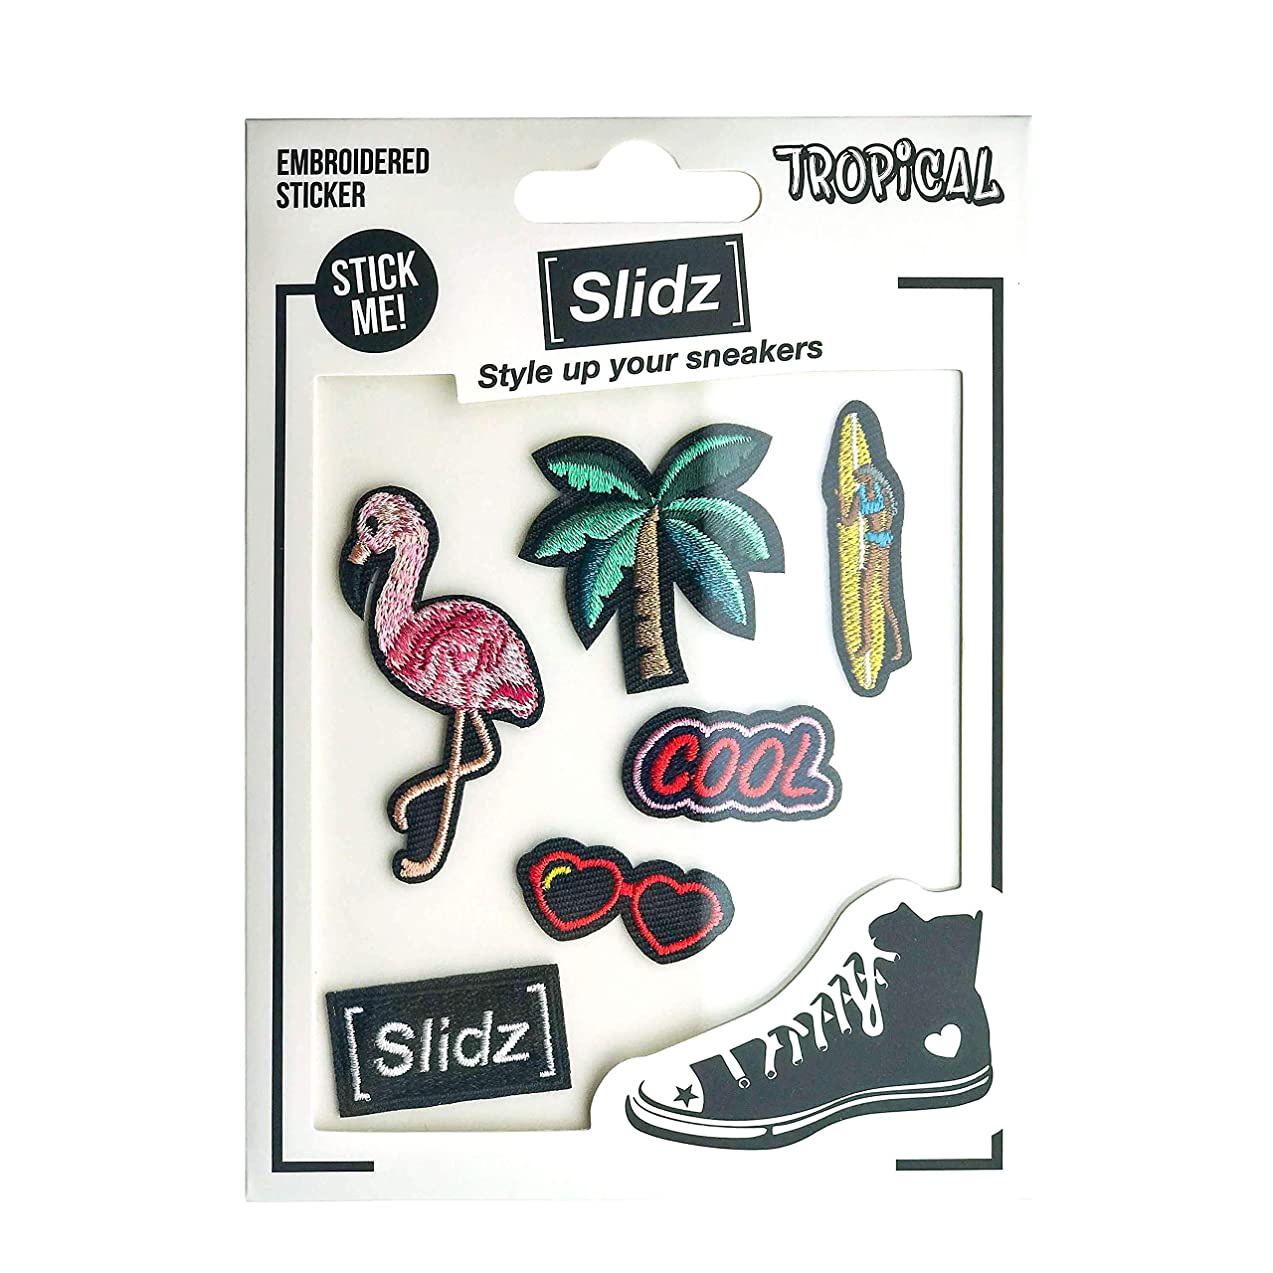 Shoelace Customization - Tropical Embroidered Stickers Patch Set - trainer tag for Nike, Adidas, Converse, Puma, Vans sneakers - Inspirational Gift - Fashion Accessory - shoelace charms for runners